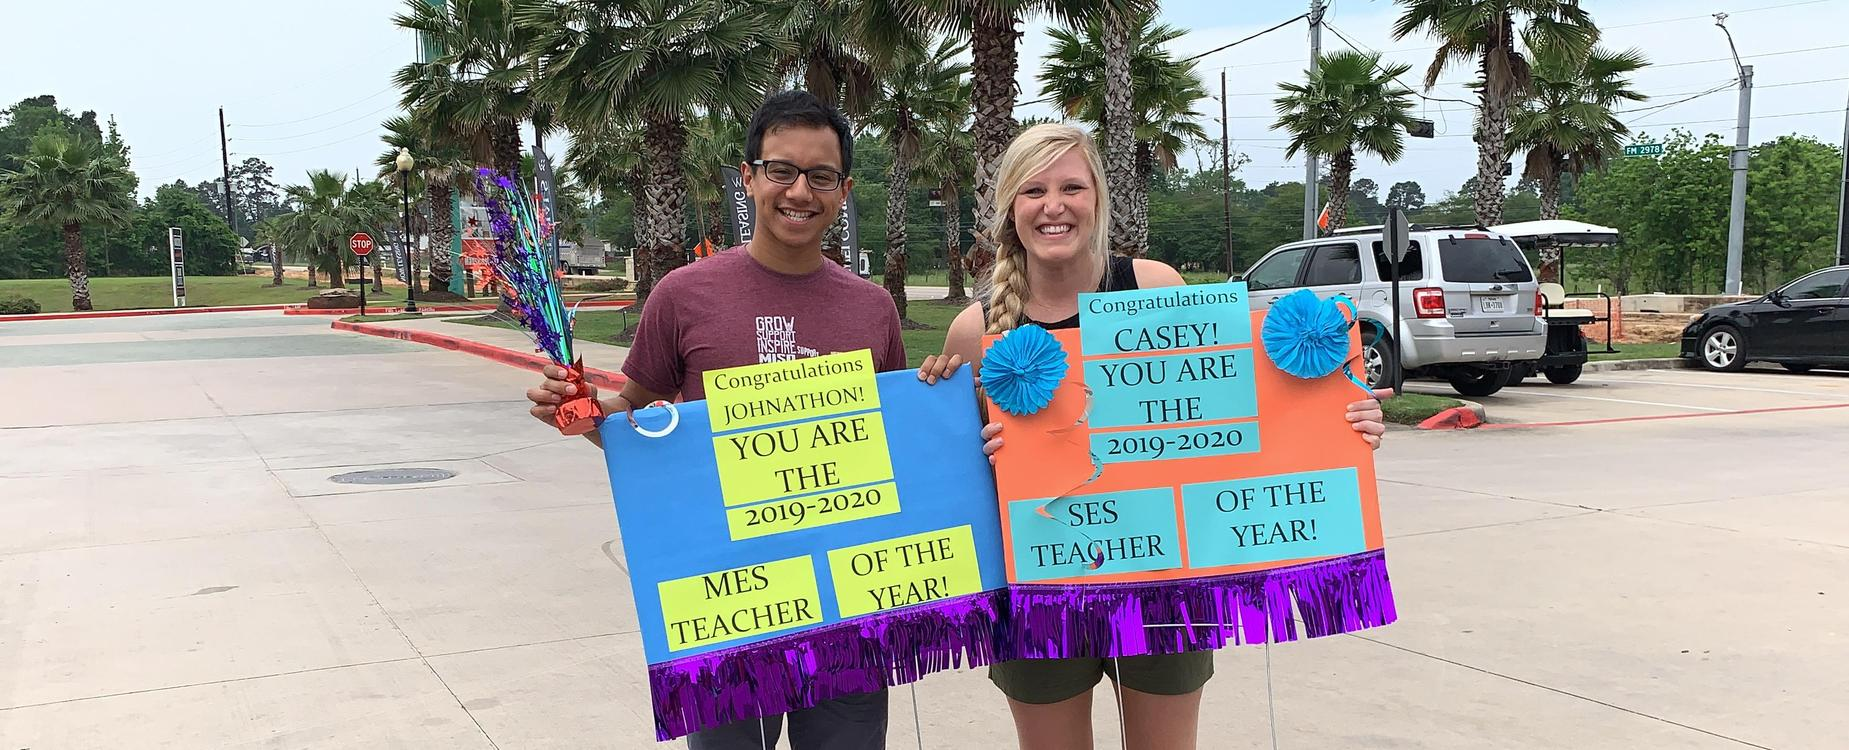 Mr. and Mrs. Molina, Teachers of the Year